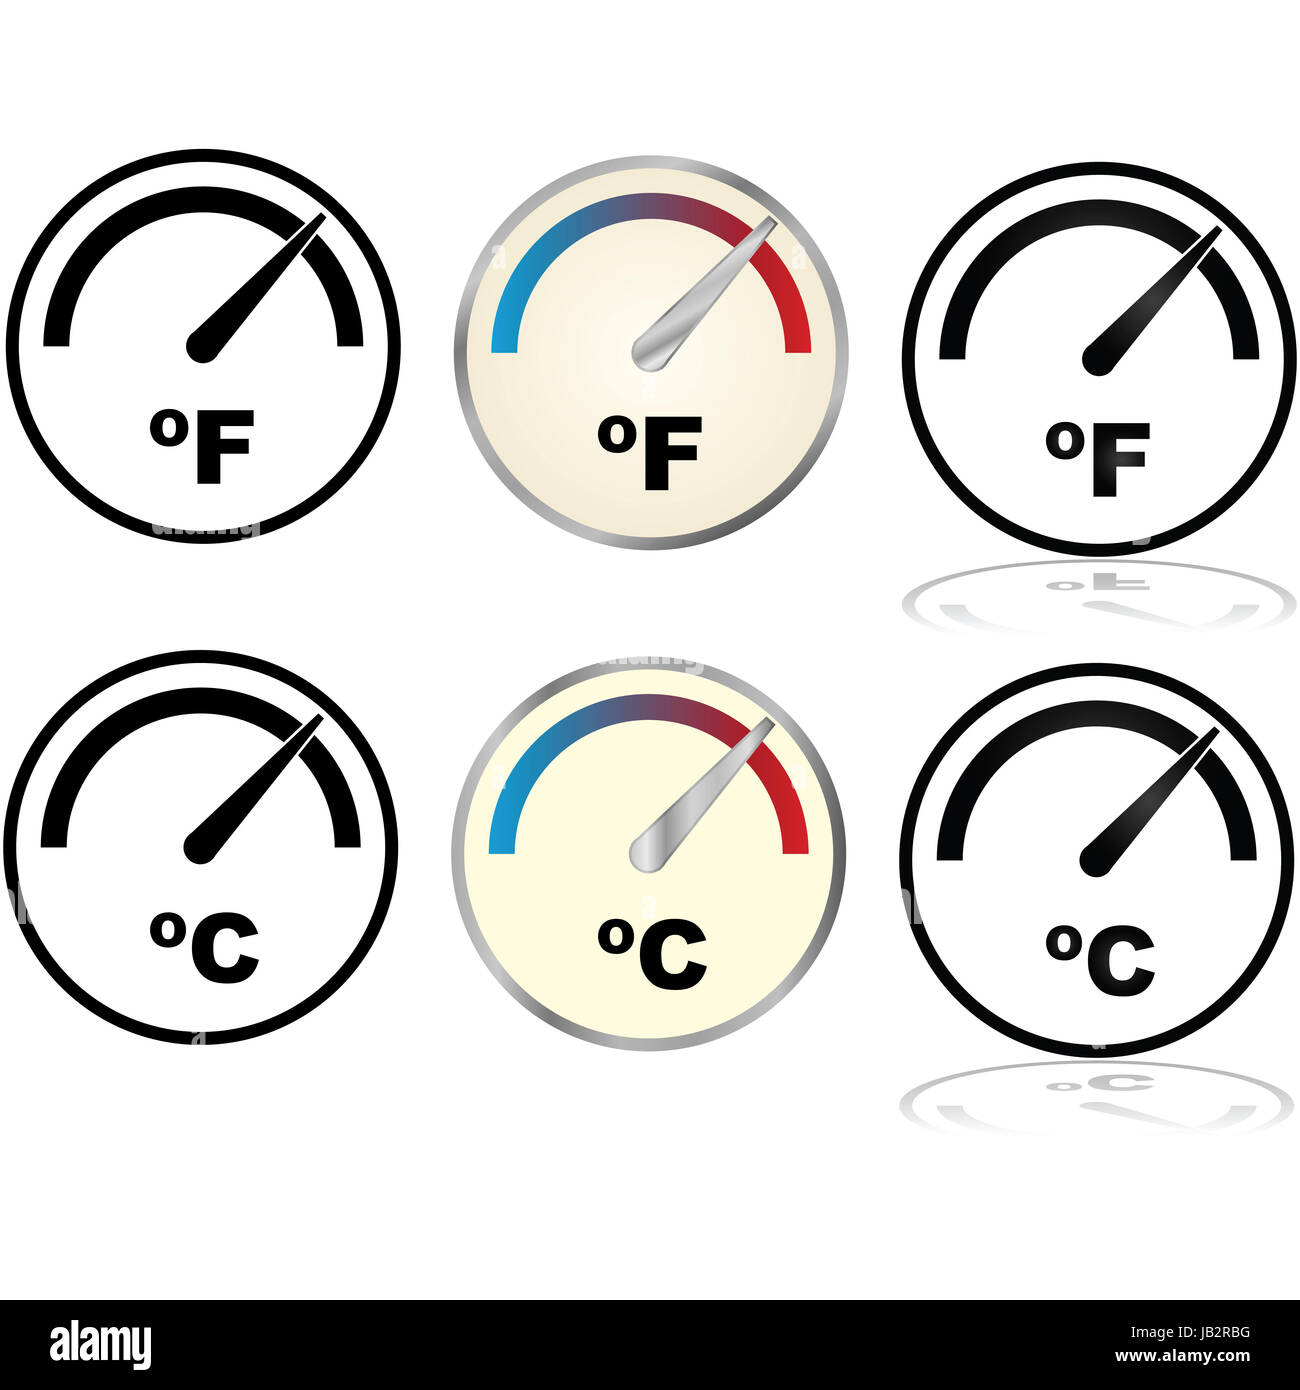 Illustration set showing icons for temperature displays in illustration set showing icons for temperature displays in fahrenheit and celsius biocorpaavc Choice Image